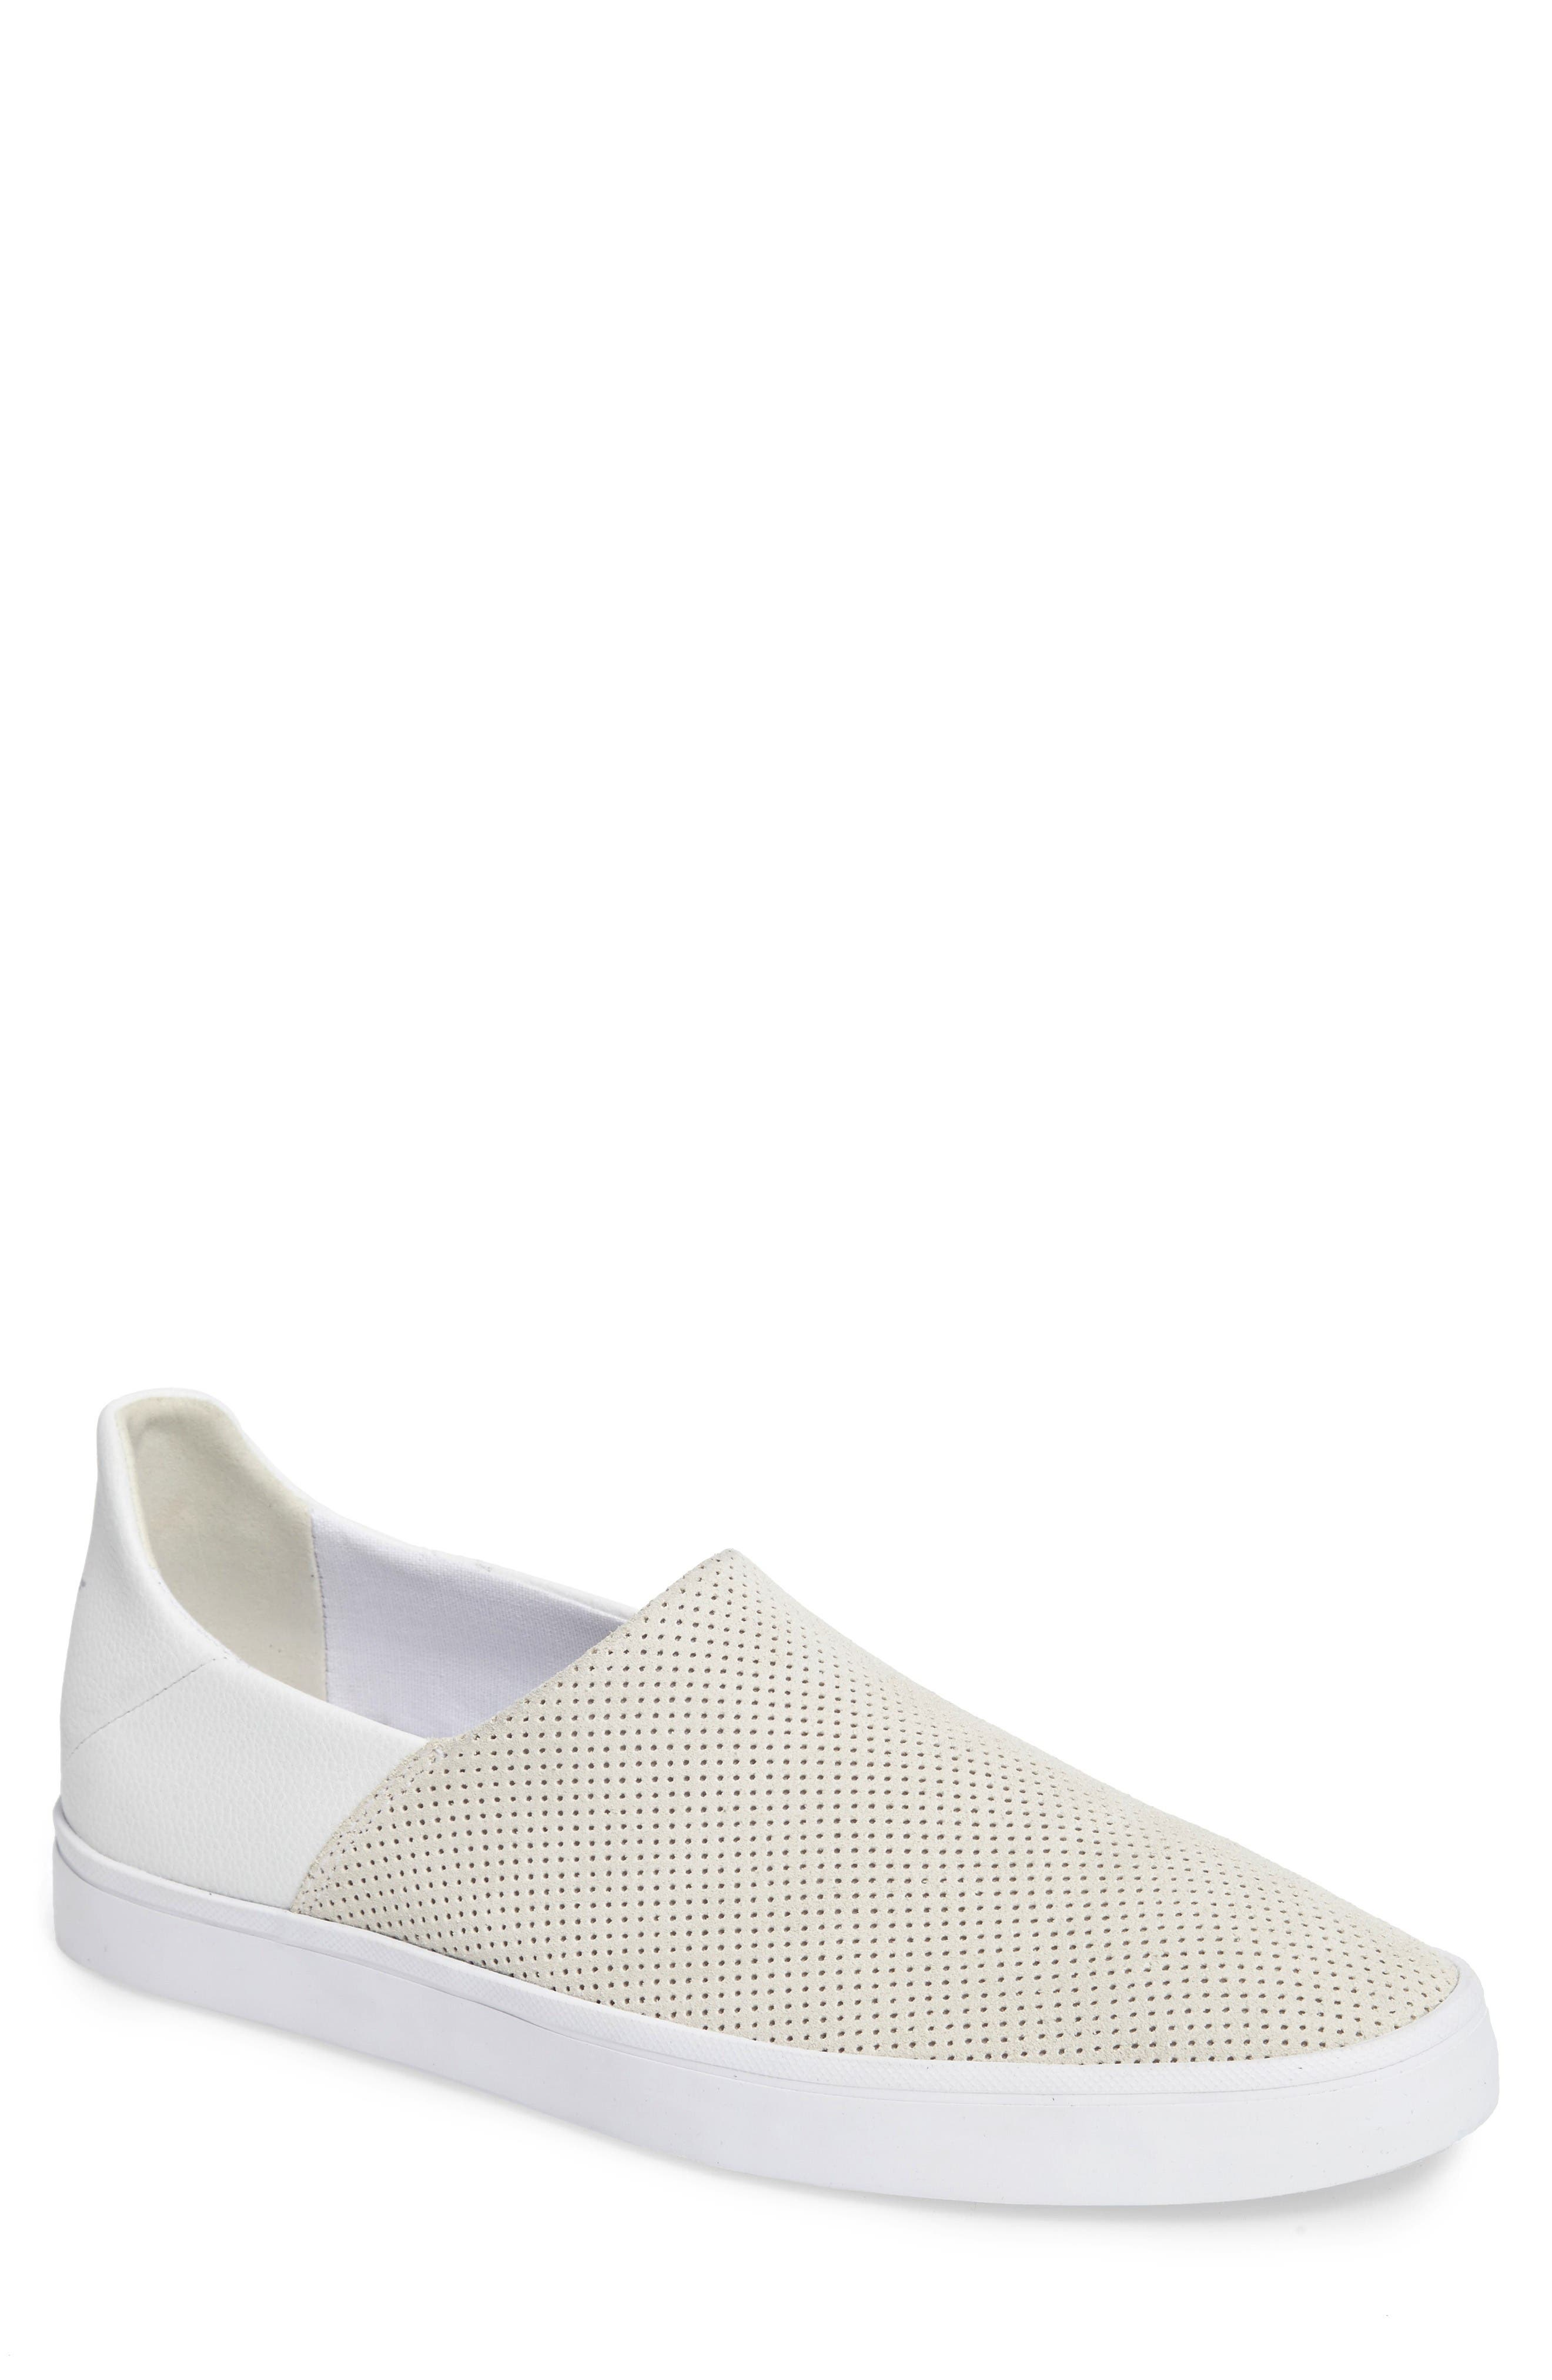 Creative Recreation Dano Slip-On (Men)